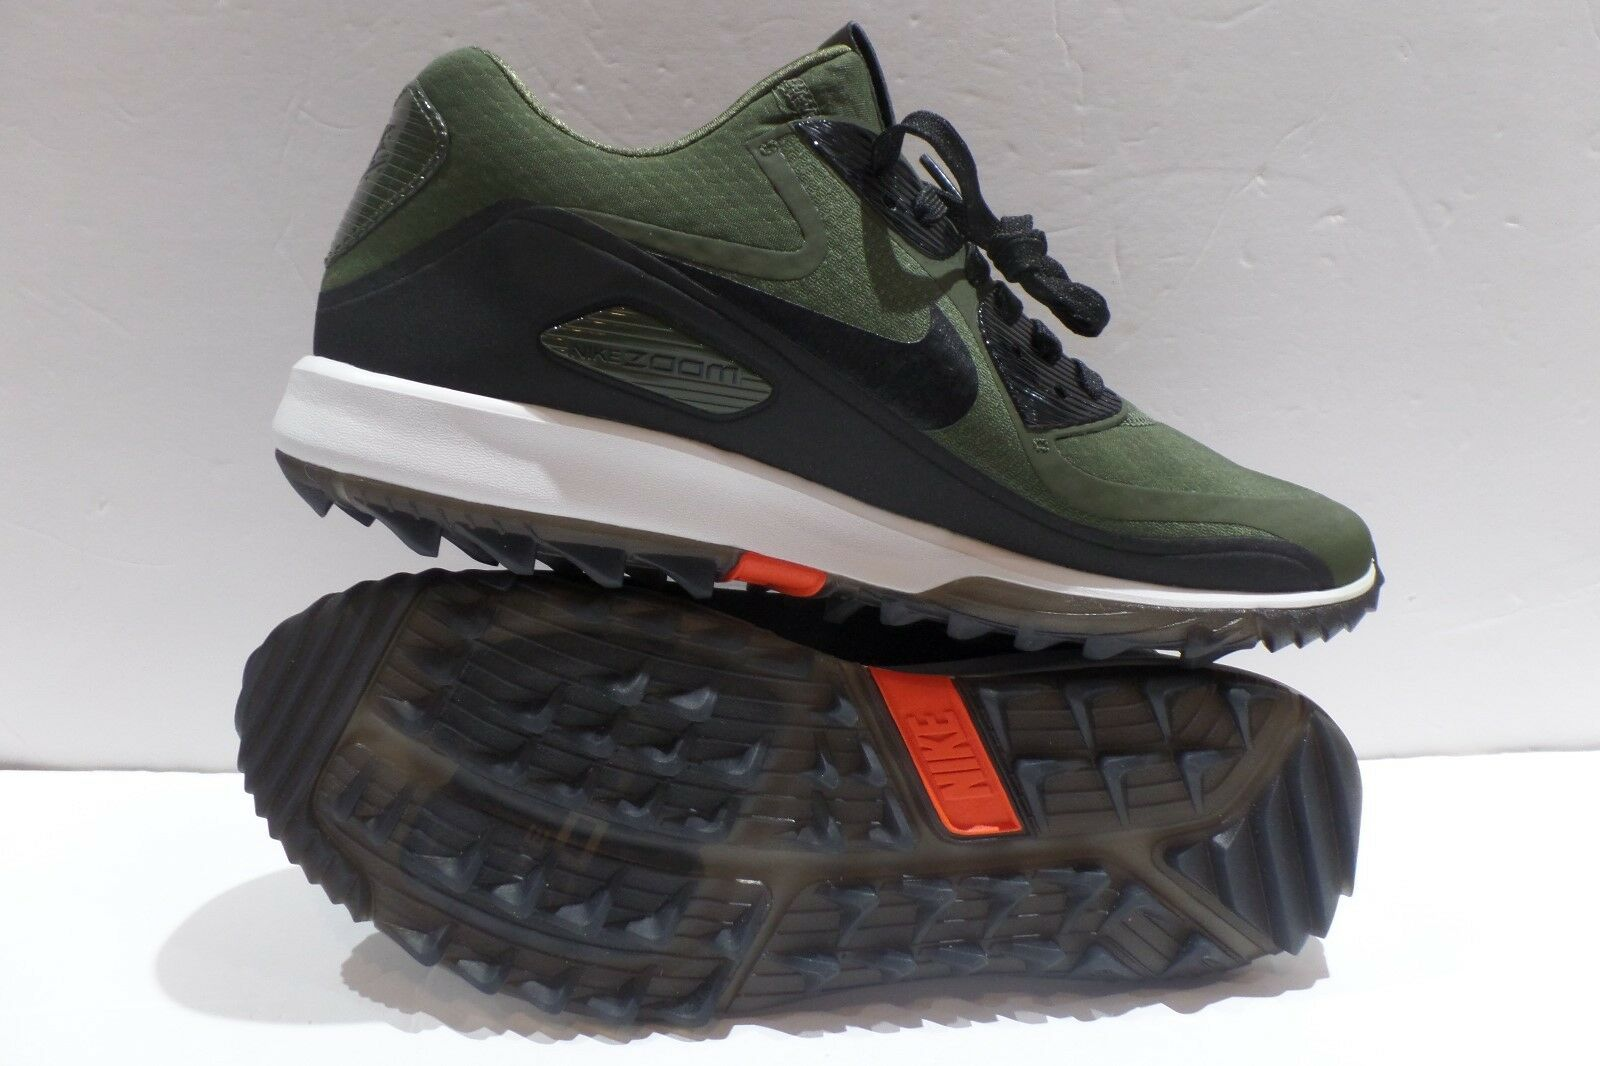 wholesale dealer 35902 b0625 Nike Air Zoom 90 IT IT IT 844569 300 Cargo Khaki Black size 9 Golf Shoe NEW  Rory 136d44